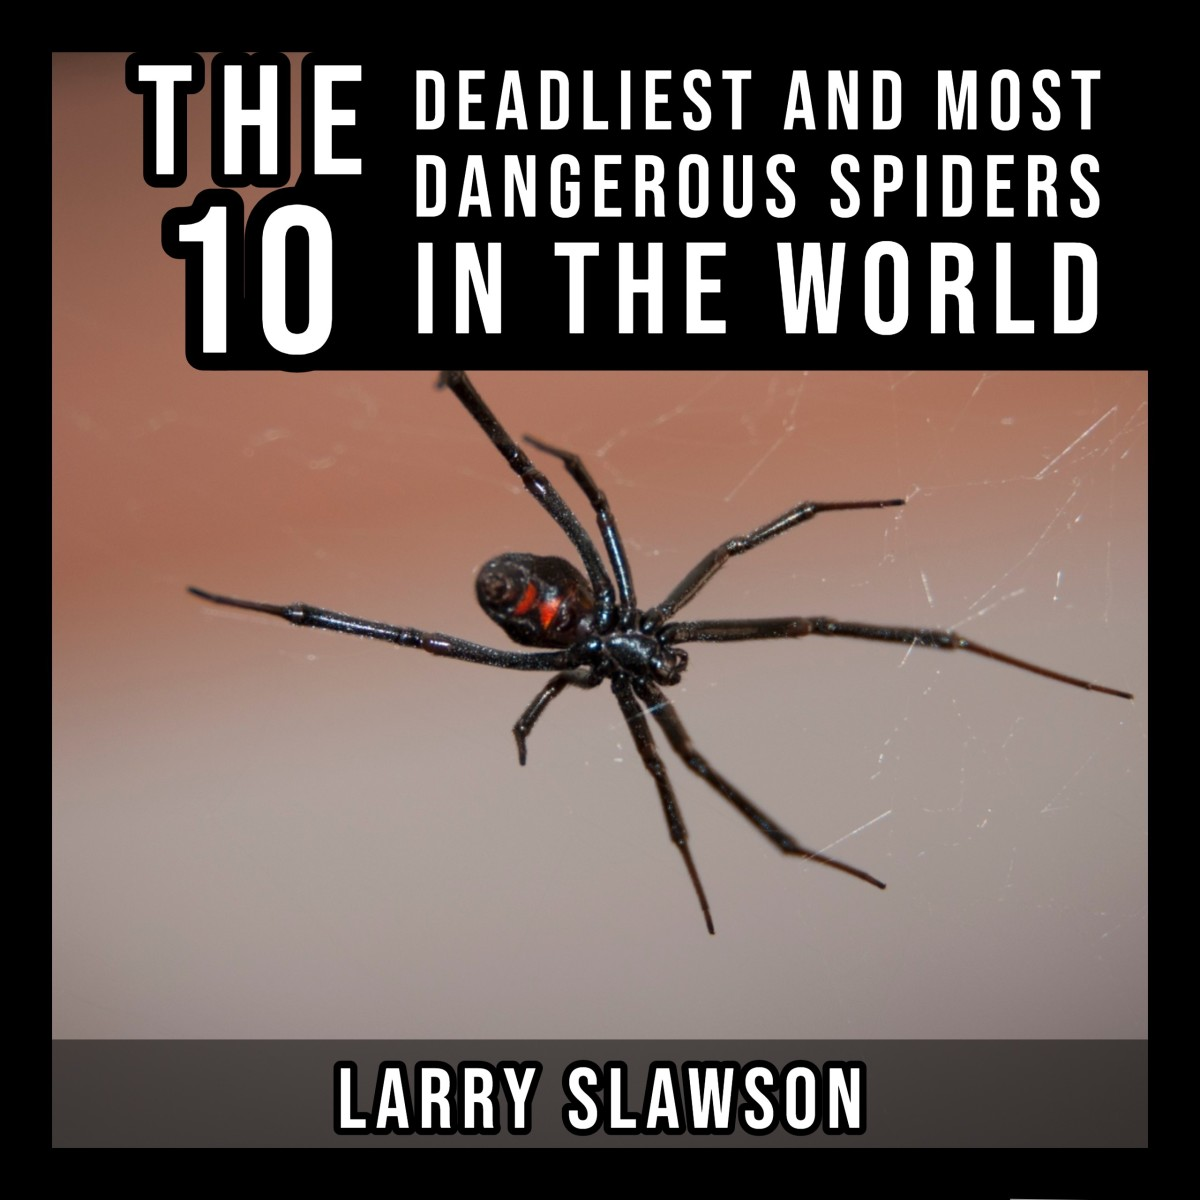 The Top 10 Deadliest Spiders in the World